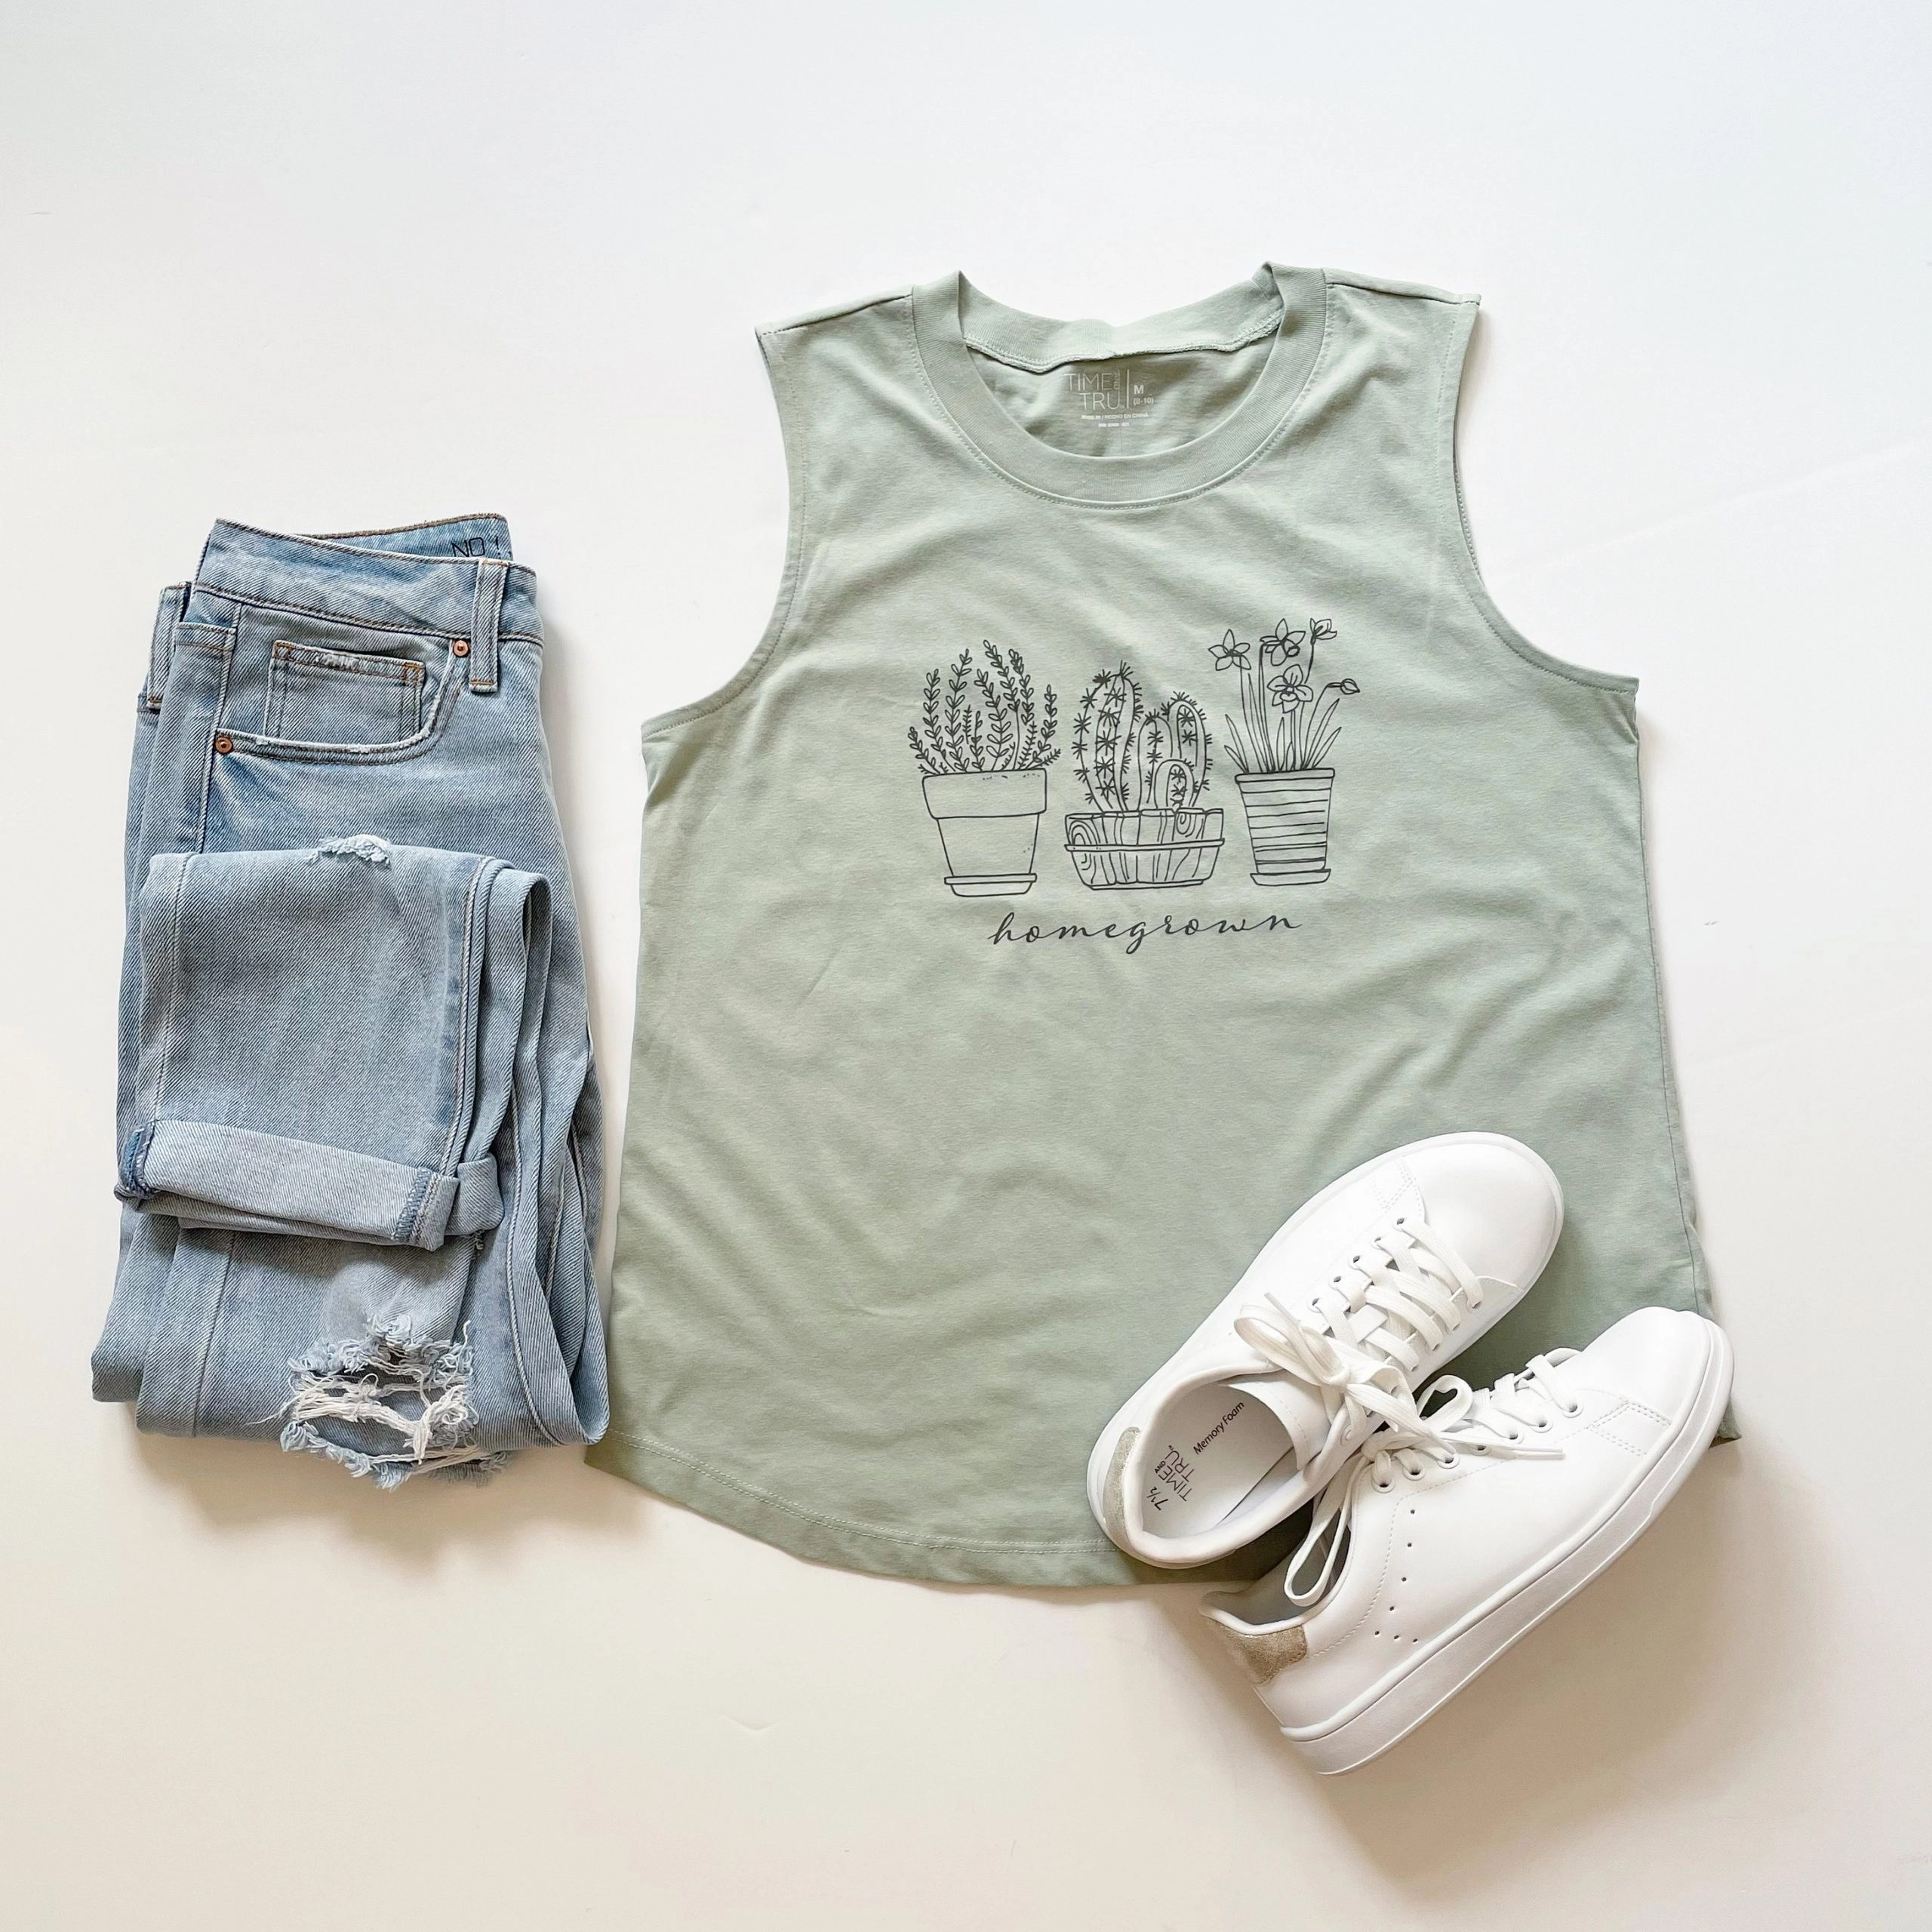 No Boundaries Girlfriend Jeans + Time and Tru Homegrown Graphic Tank Top and Court Sneakers